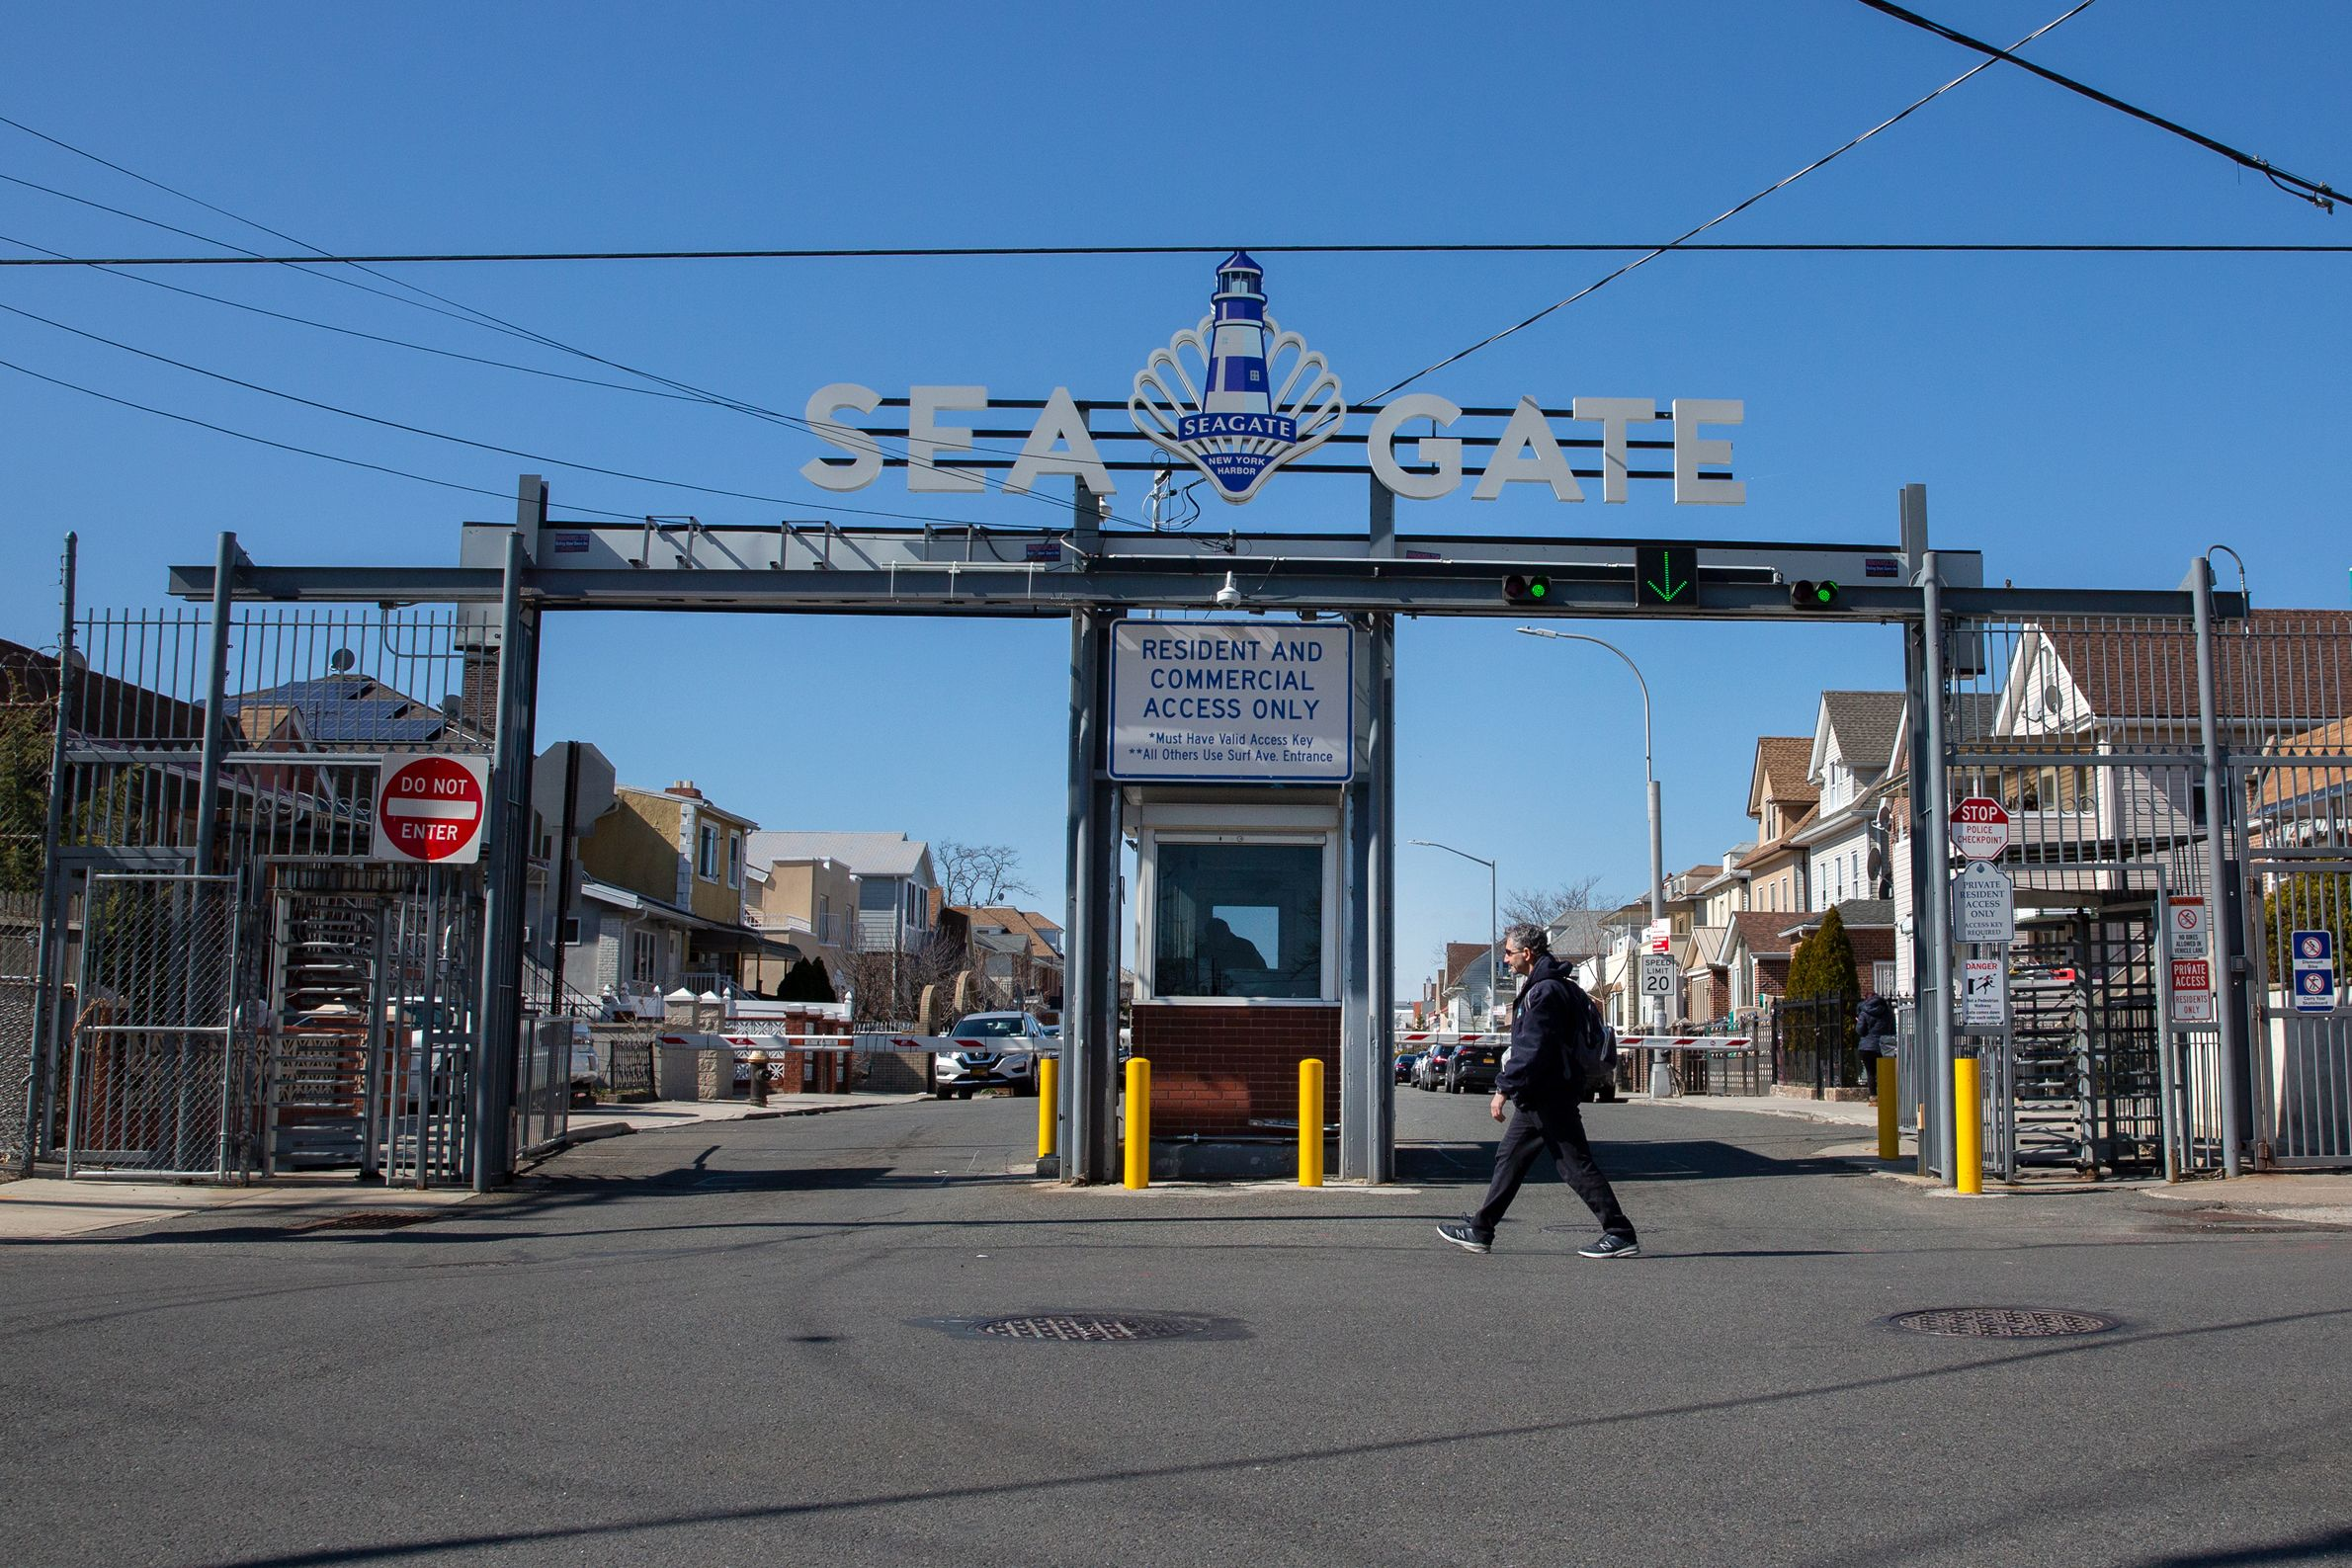 A guarded entrance to the private Sea Gate community in Coney Island.